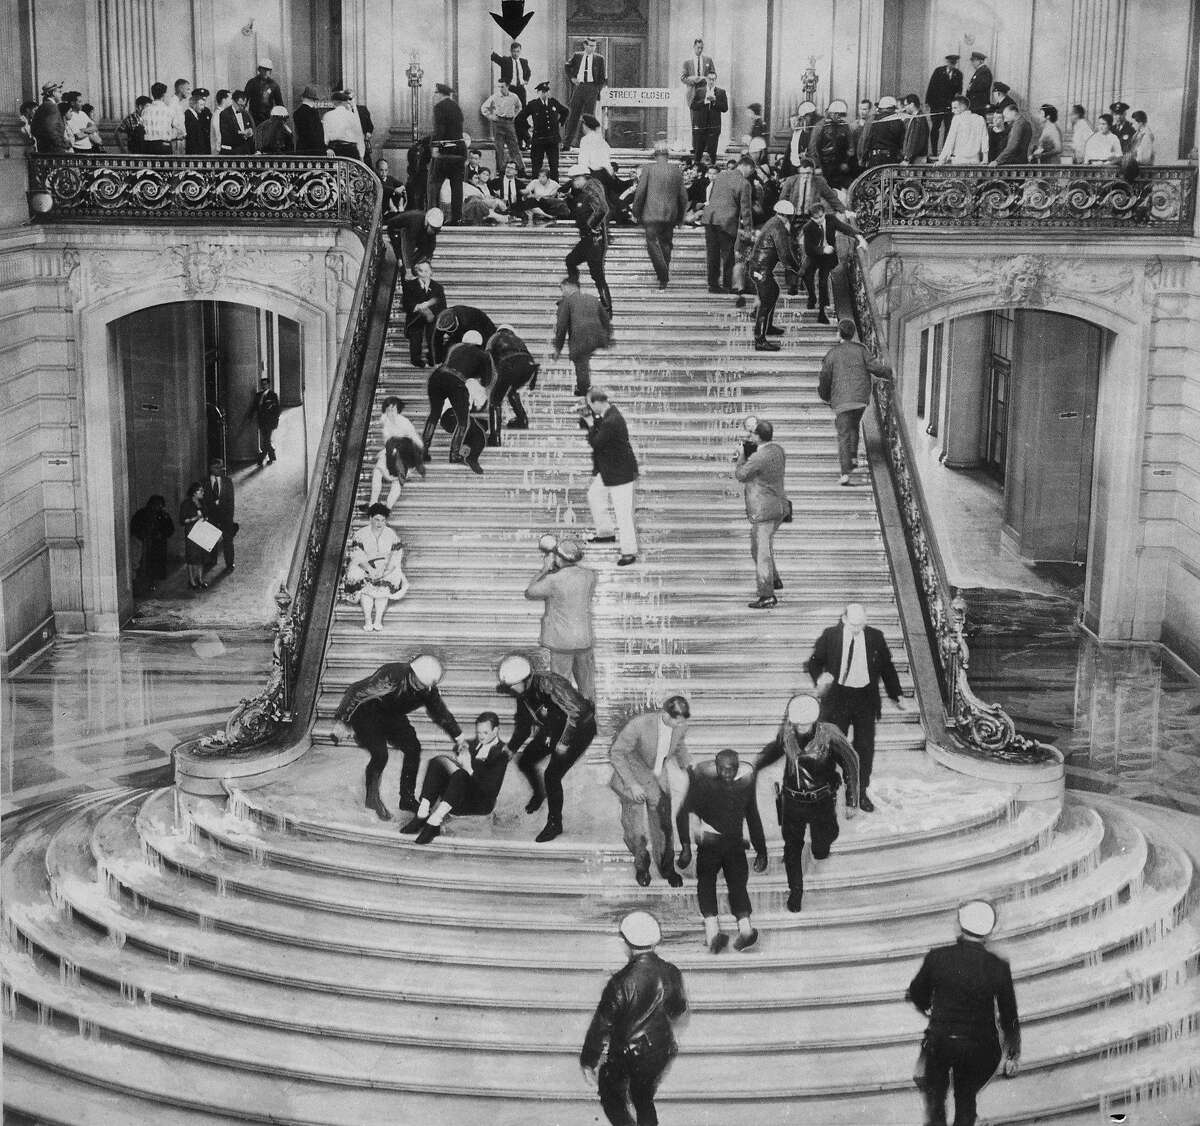 Police blast protestors with fire hoses, and the remove demonstrators from City Hall steps, April 13, 1960